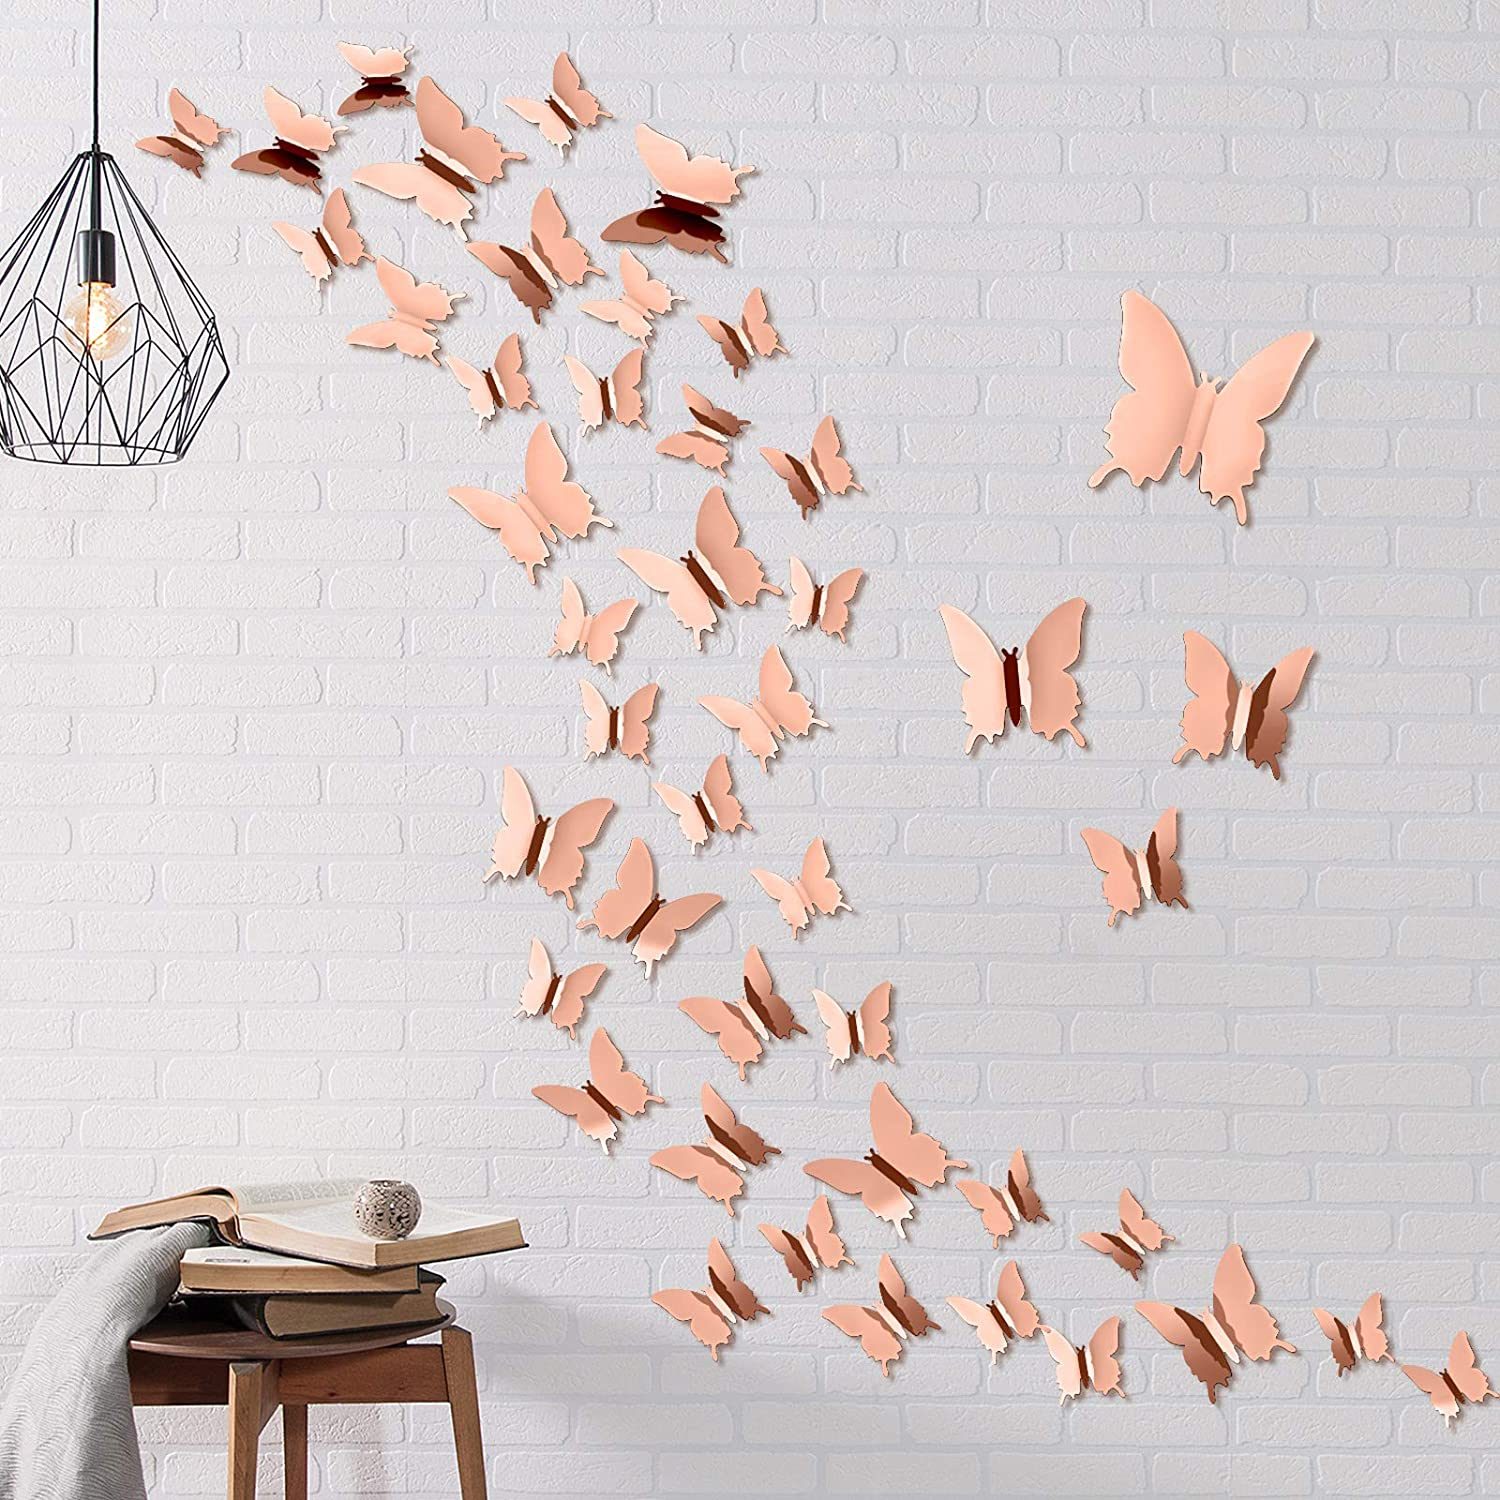 Aneco 60 Pieces 3D Mirror Butterfly Wall Stickers DIY Mirror Butterfly Combination Art Mirror Butterfly Wall Stickers for Crafts Home Decoration